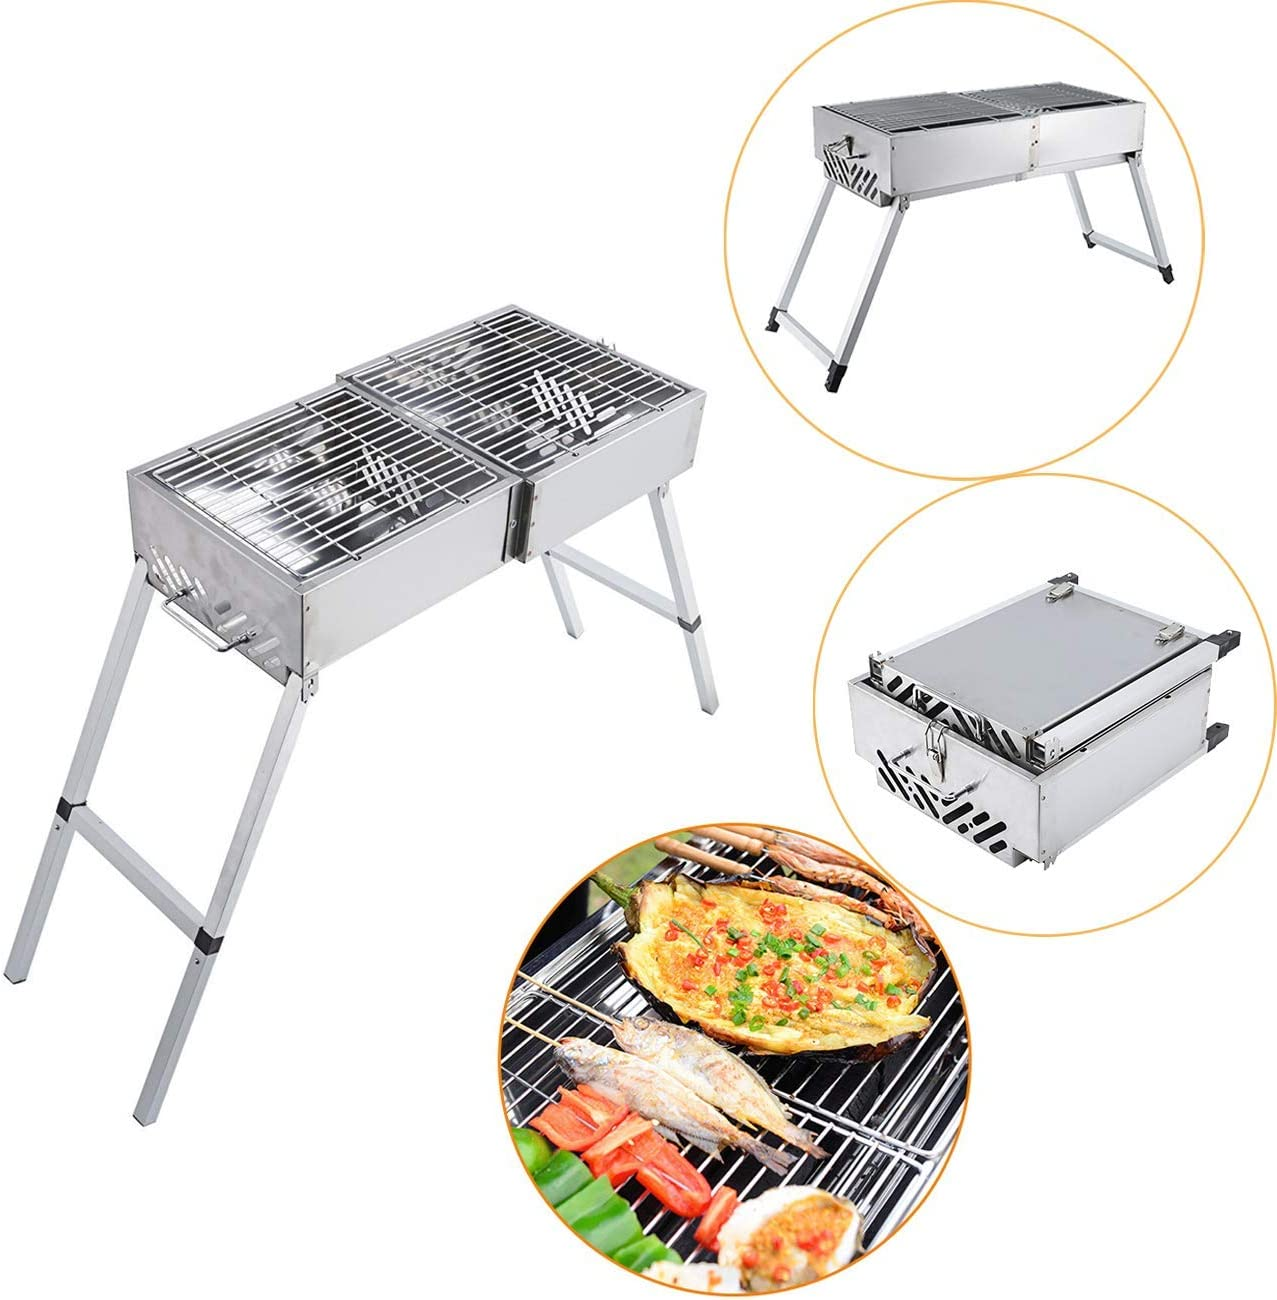 BEAMNOVA 24 Inch Charcoal BBQ Grill for Portable Barbeque Grill with Handle Feet Extensions Foldable Stainless Steel Mesh for Outdoor Camping Vegetables Burgers Fish Shrimp Steaks